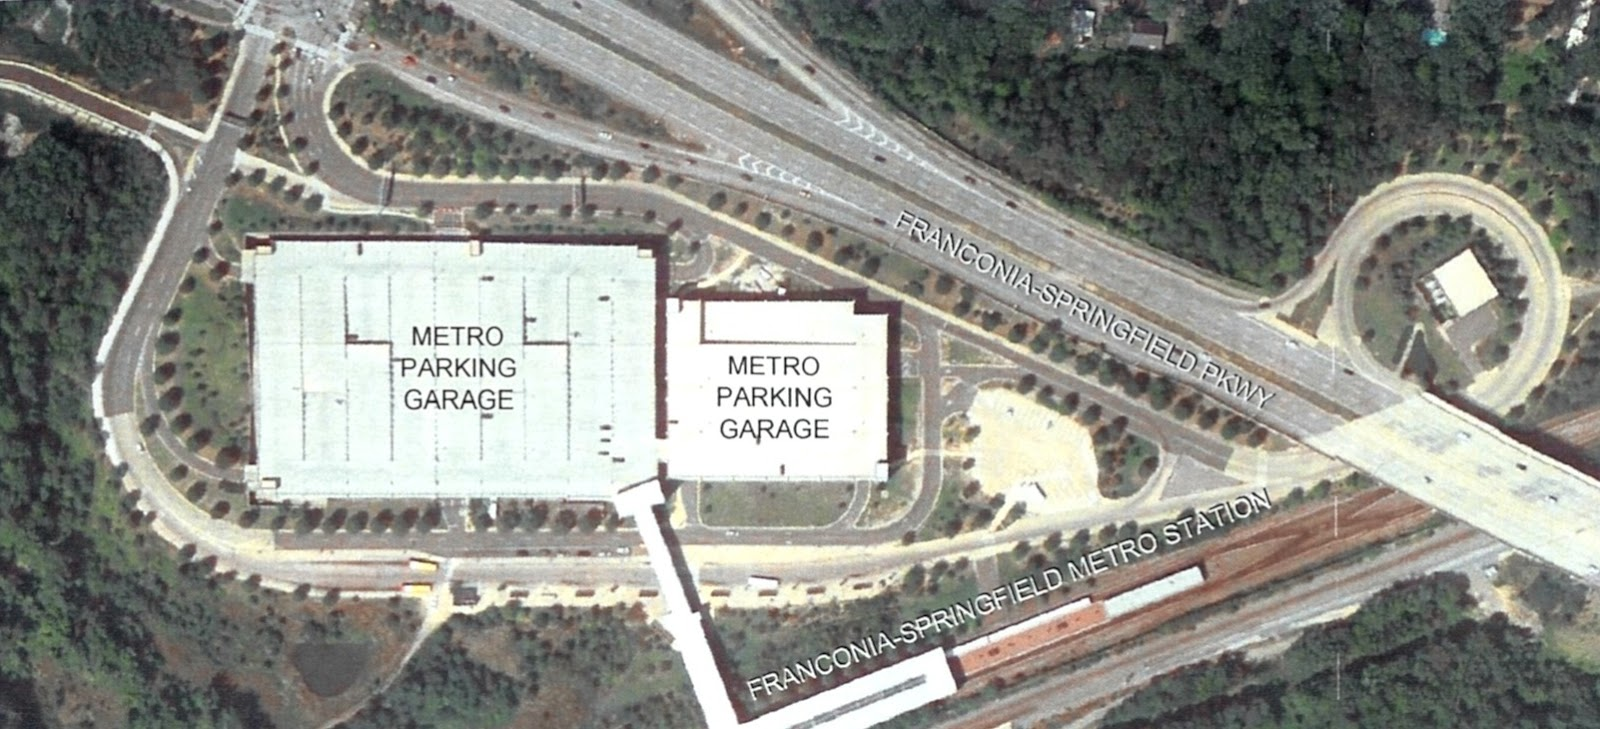 Bike Parking Facility Planned At Franconia Springfield Metro Station